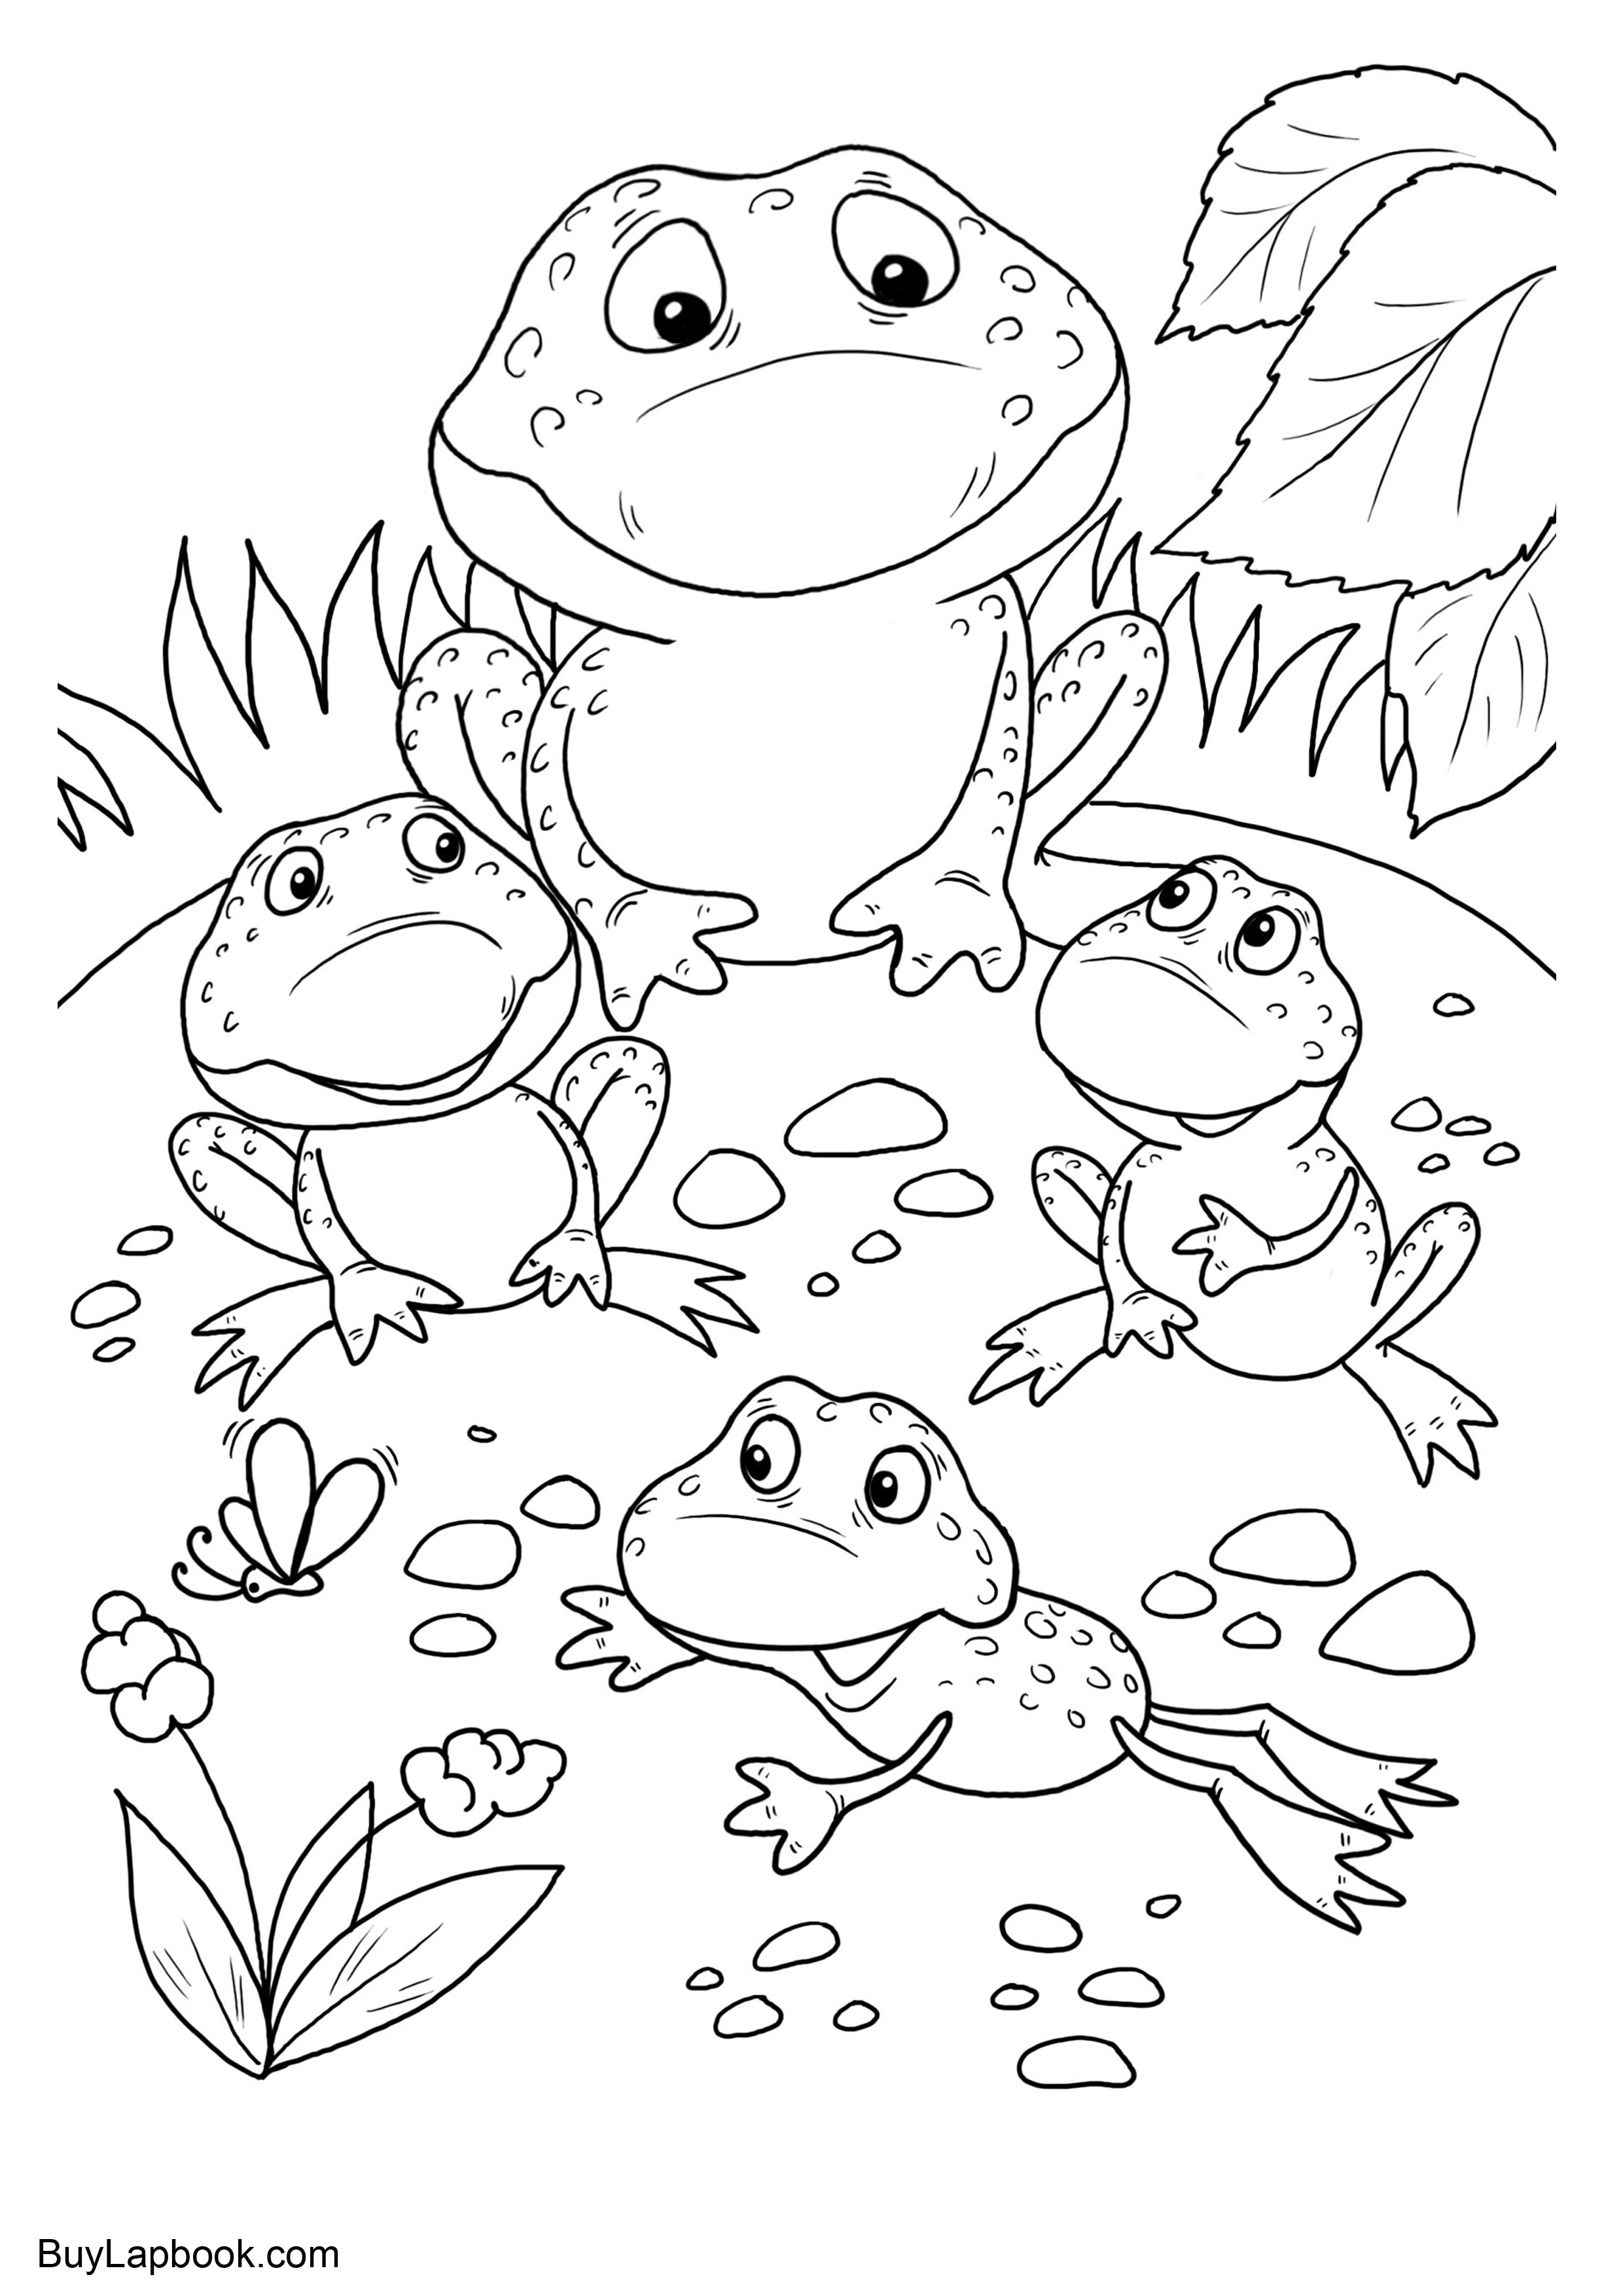 Frog Coloring Pages | 3508x2480